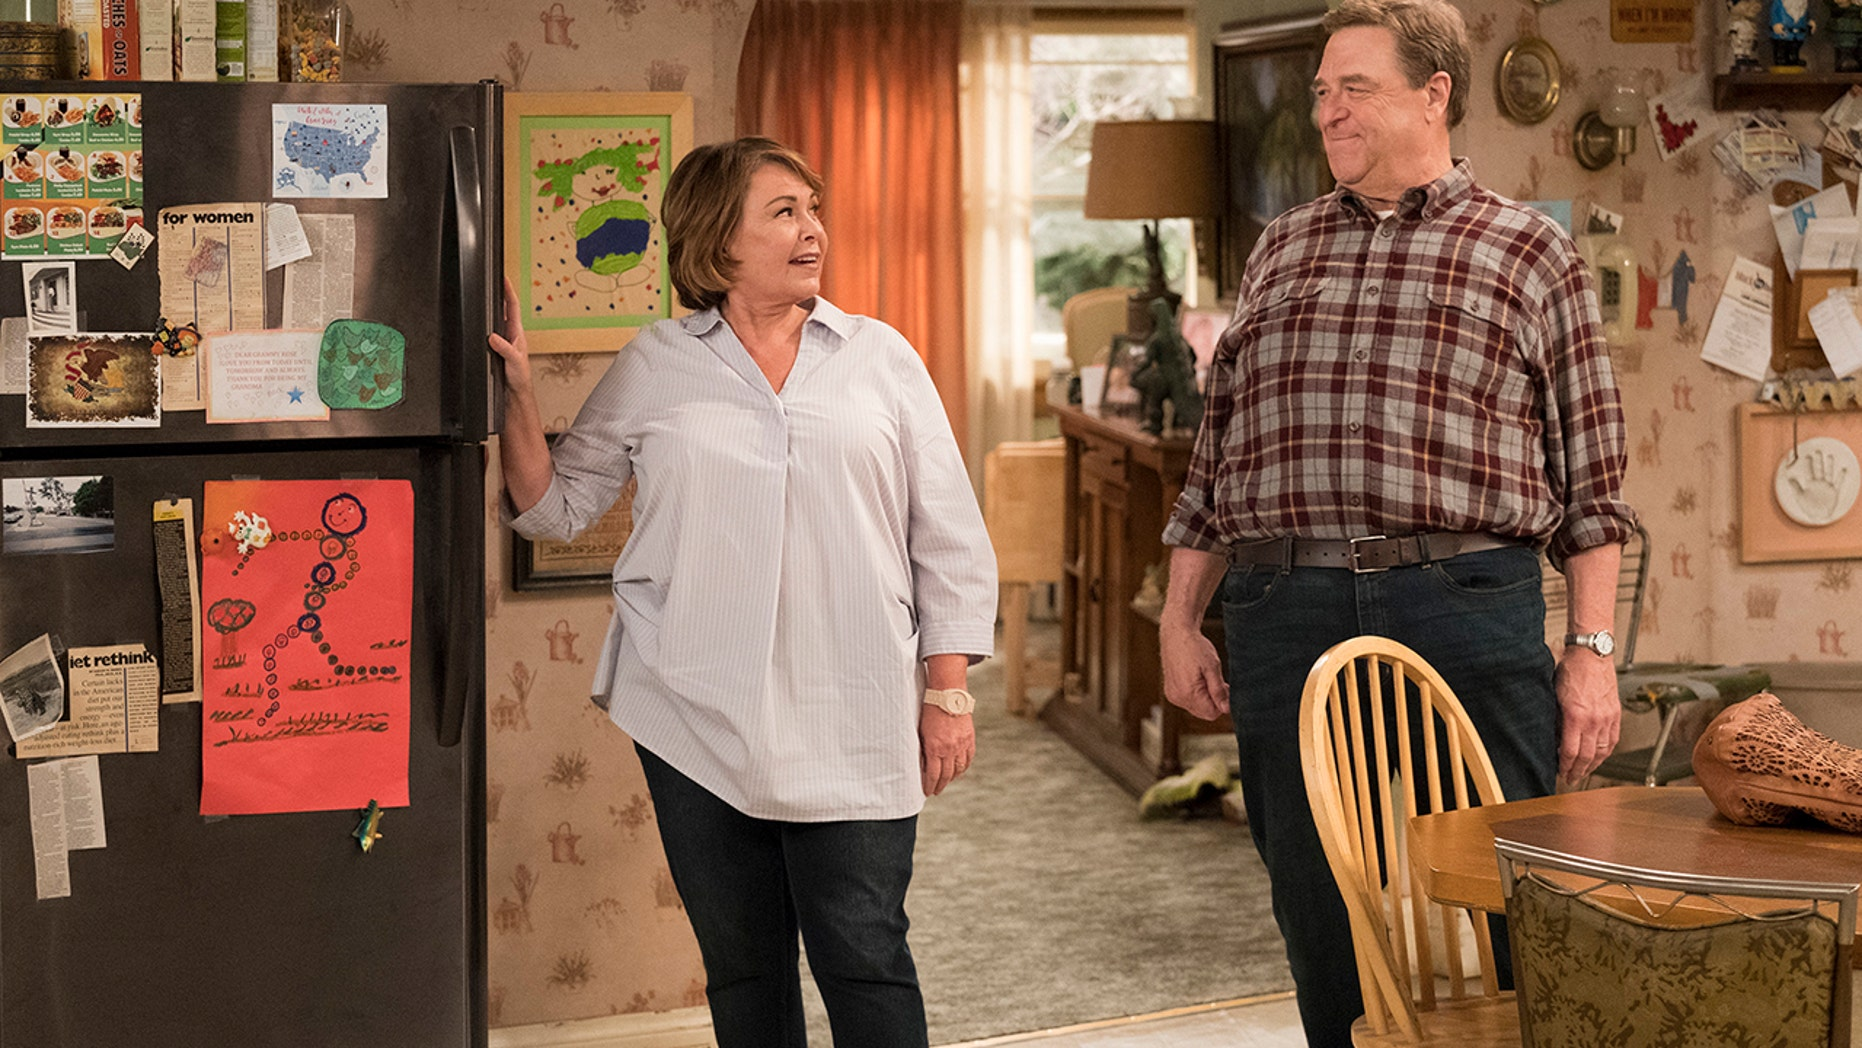 """This image released by ABS shows Roseanne Barr, left, and John Goodman in a scene from the comedy series """"Roseanne."""" ABC's """"Roseanne"""" revival is in the running for Emmy nominations Thursday, but will TV academy voters overlook its star's racist tweet that brought the sitcom to an abrupt end?"""